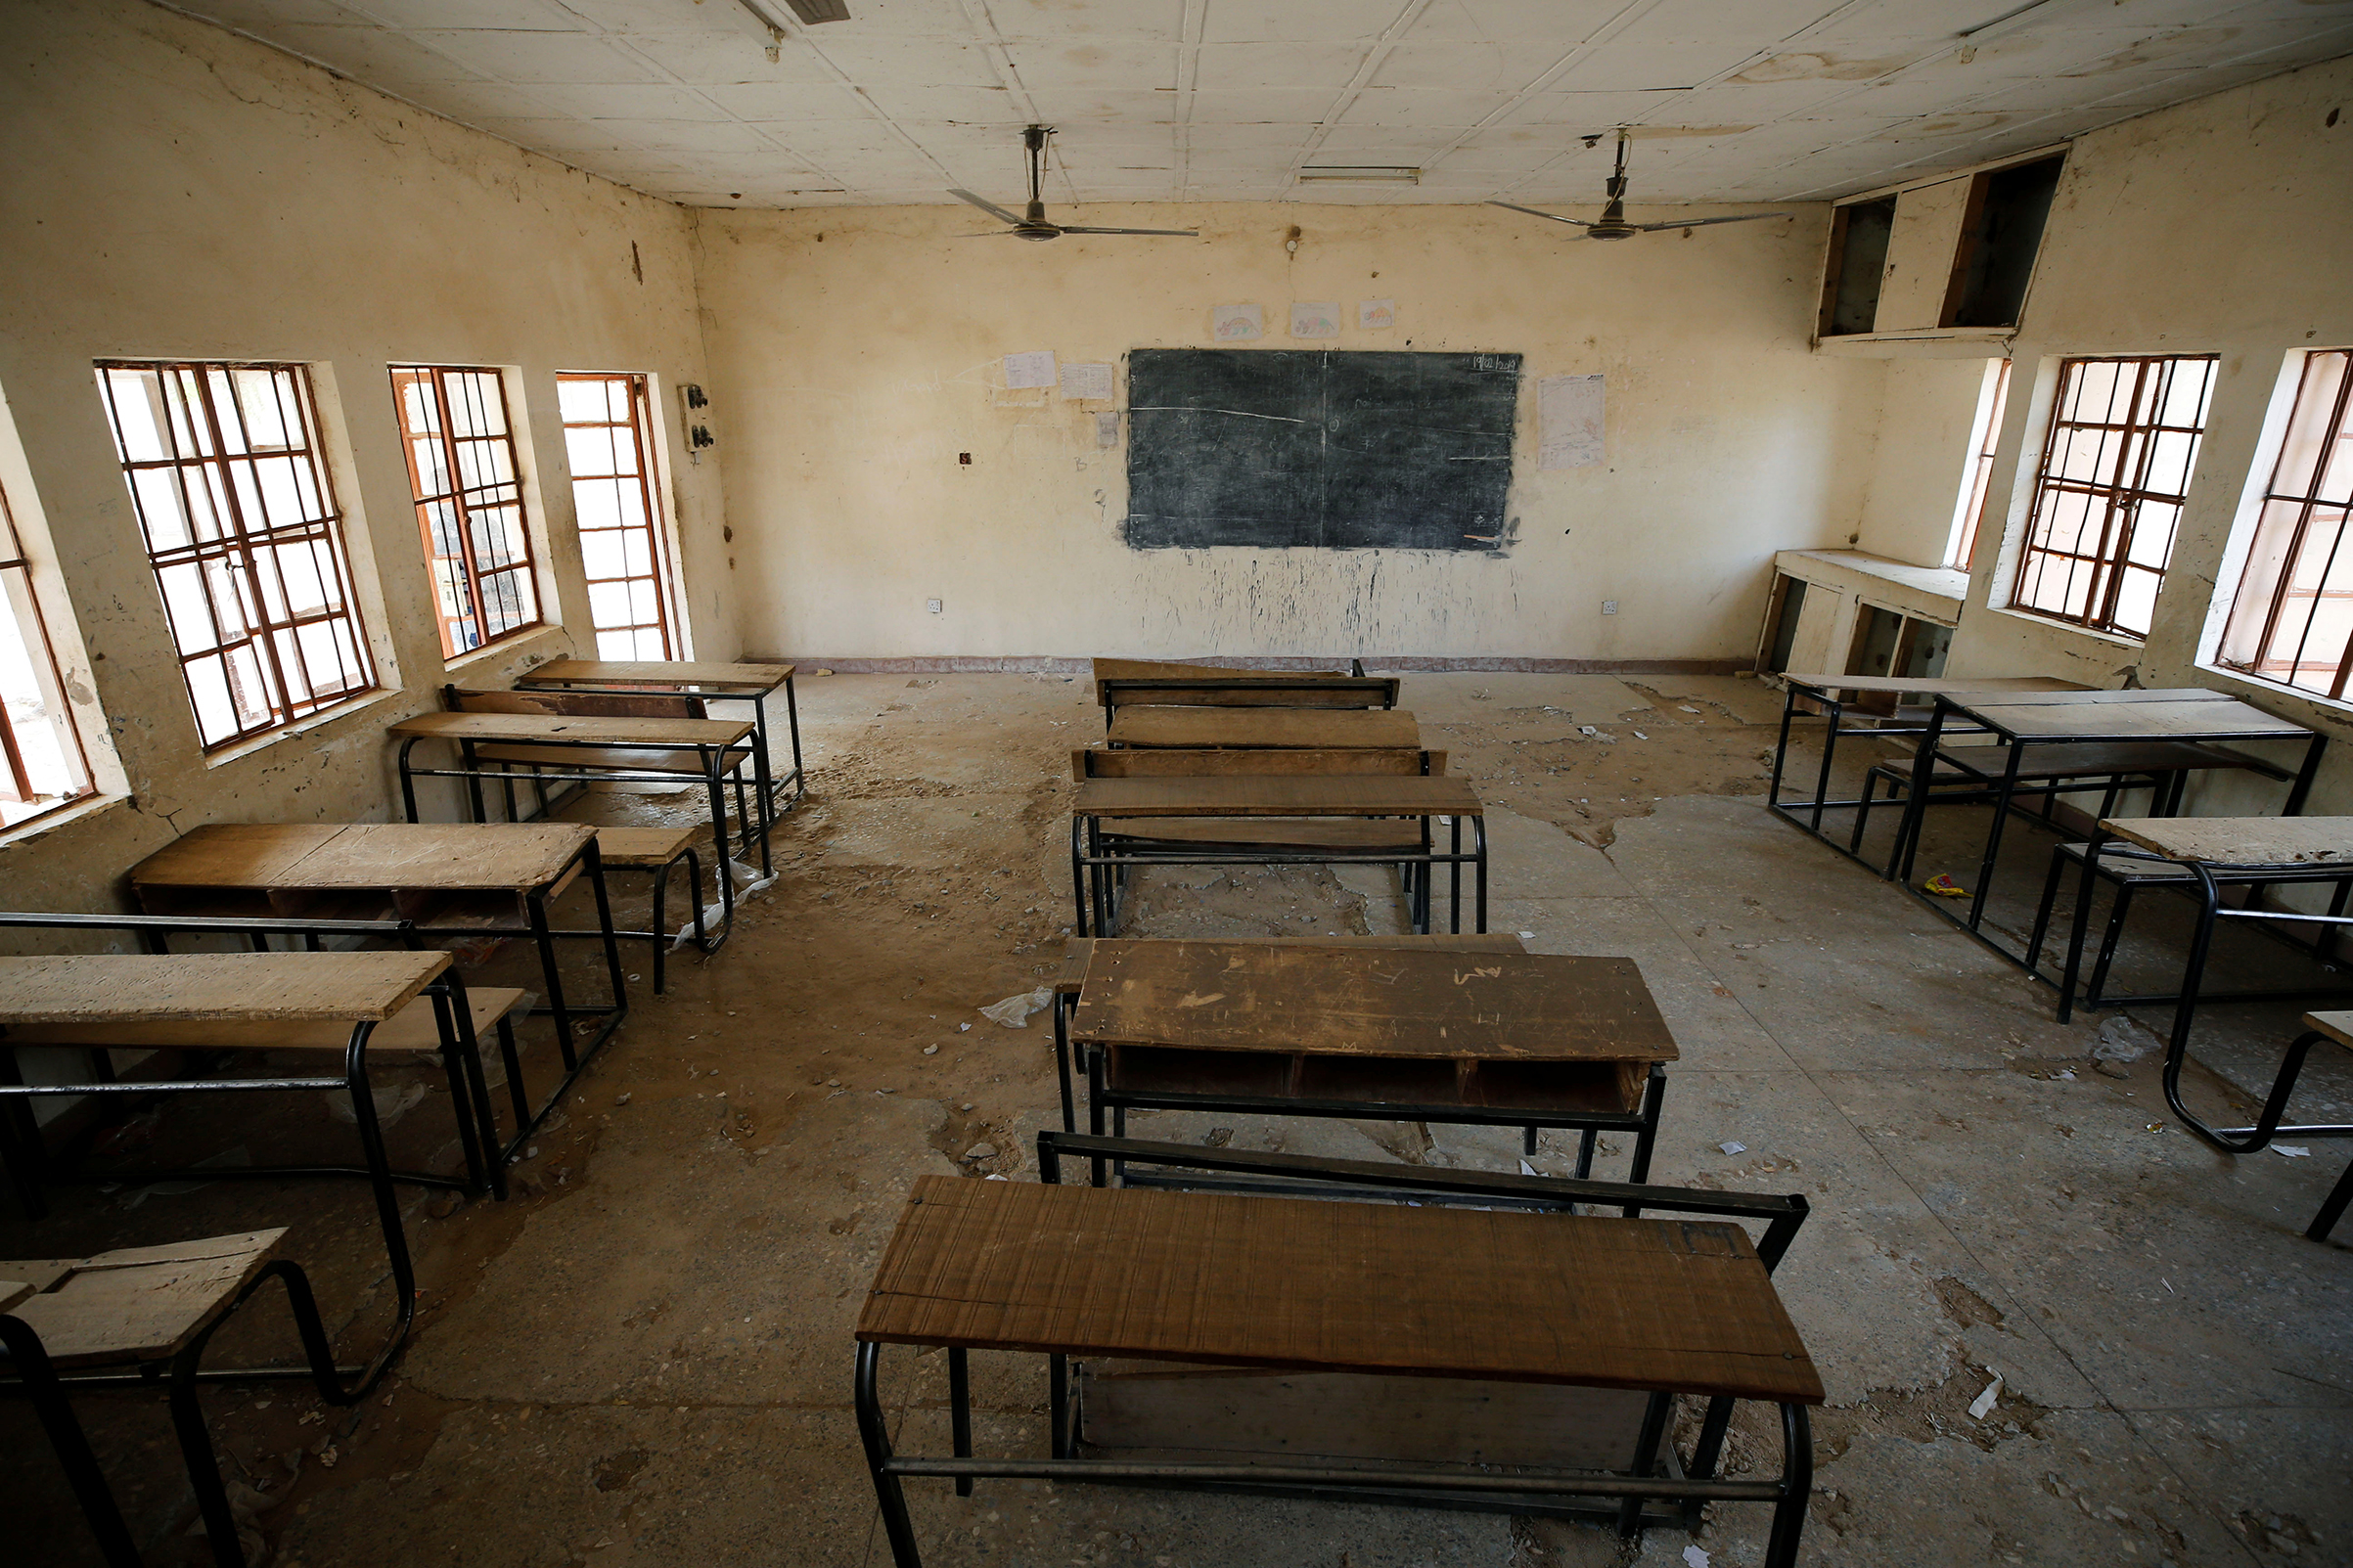 An empty classroom at the school in Dapchi, Nigeria, where dozens of school girls went missing after an attack on the village by Boko Haram on Feb. 23, 2018.